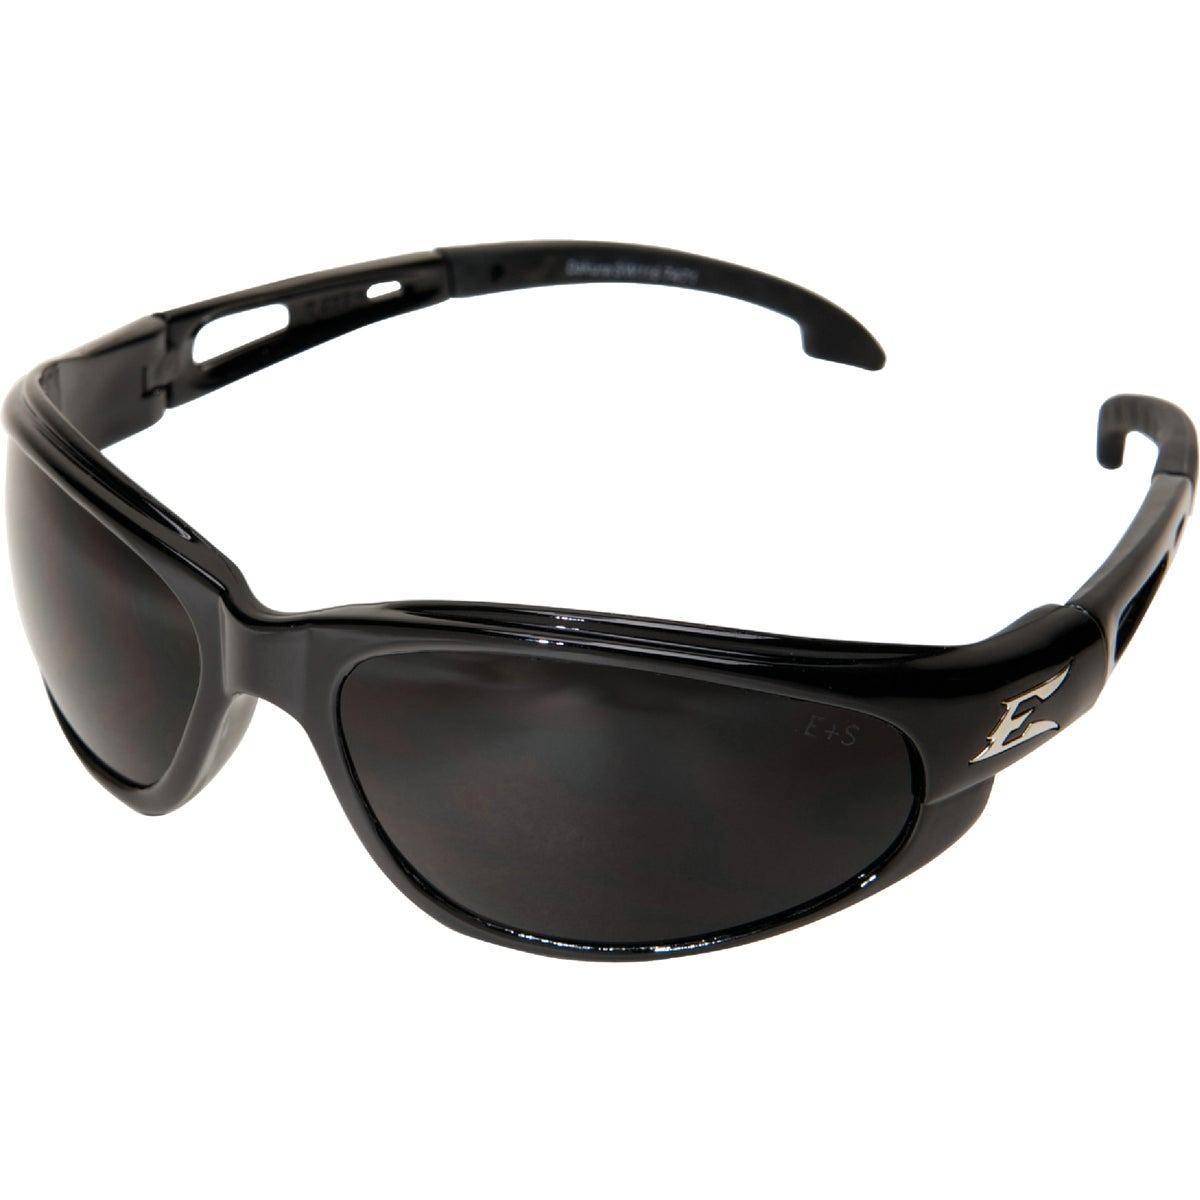 DAKURA BLACK/SMOKE LENS - SW116 by Edge Eyewear